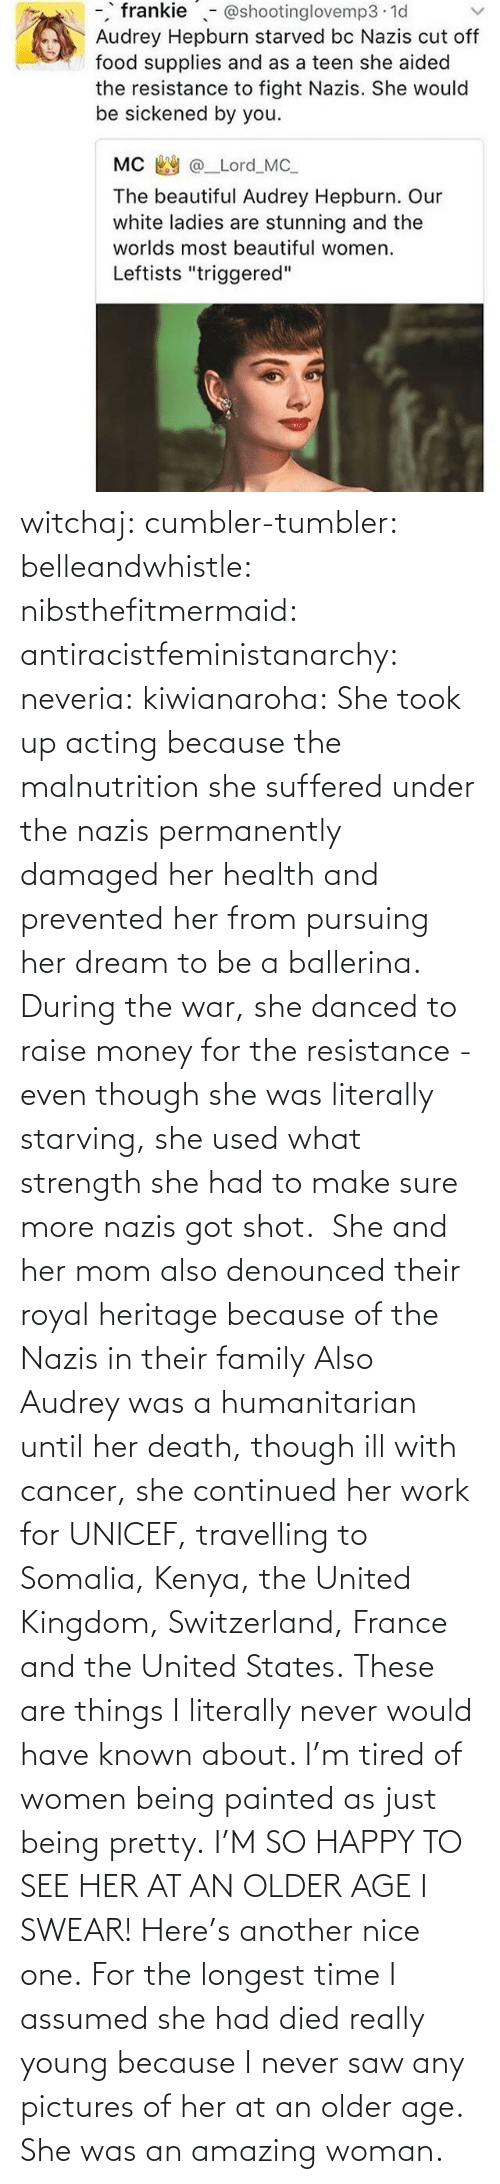 states: witchaj: cumbler-tumbler:  belleandwhistle:  nibsthefitmermaid:  antiracistfeministanarchy:  neveria:  kiwianaroha: She took up acting because the malnutrition she suffered under the nazis permanently damaged her health and prevented her from pursuing her dream to be a ballerina. During the war, she danced to raise money for the resistance - even though she was literally starving, she used what strength she had to make sure more nazis got shot.  She and her mom also denounced their royal heritage because of the Nazis in their family  Also Audrey was a humanitarian until her death, though ill with cancer, she continued her work for UNICEF, travelling to Somalia, Kenya, the United Kingdom, Switzerland, France and the United States.  These are things I literally never would have known about. I'm tired of women being painted as just being pretty.  I'M SO HAPPY TO SEE HER AT AN OLDER AGE I SWEAR!  Here's another nice one.   For the longest time I assumed she had died really young because I never saw any pictures of her at an older age.  She was an amazing woman.